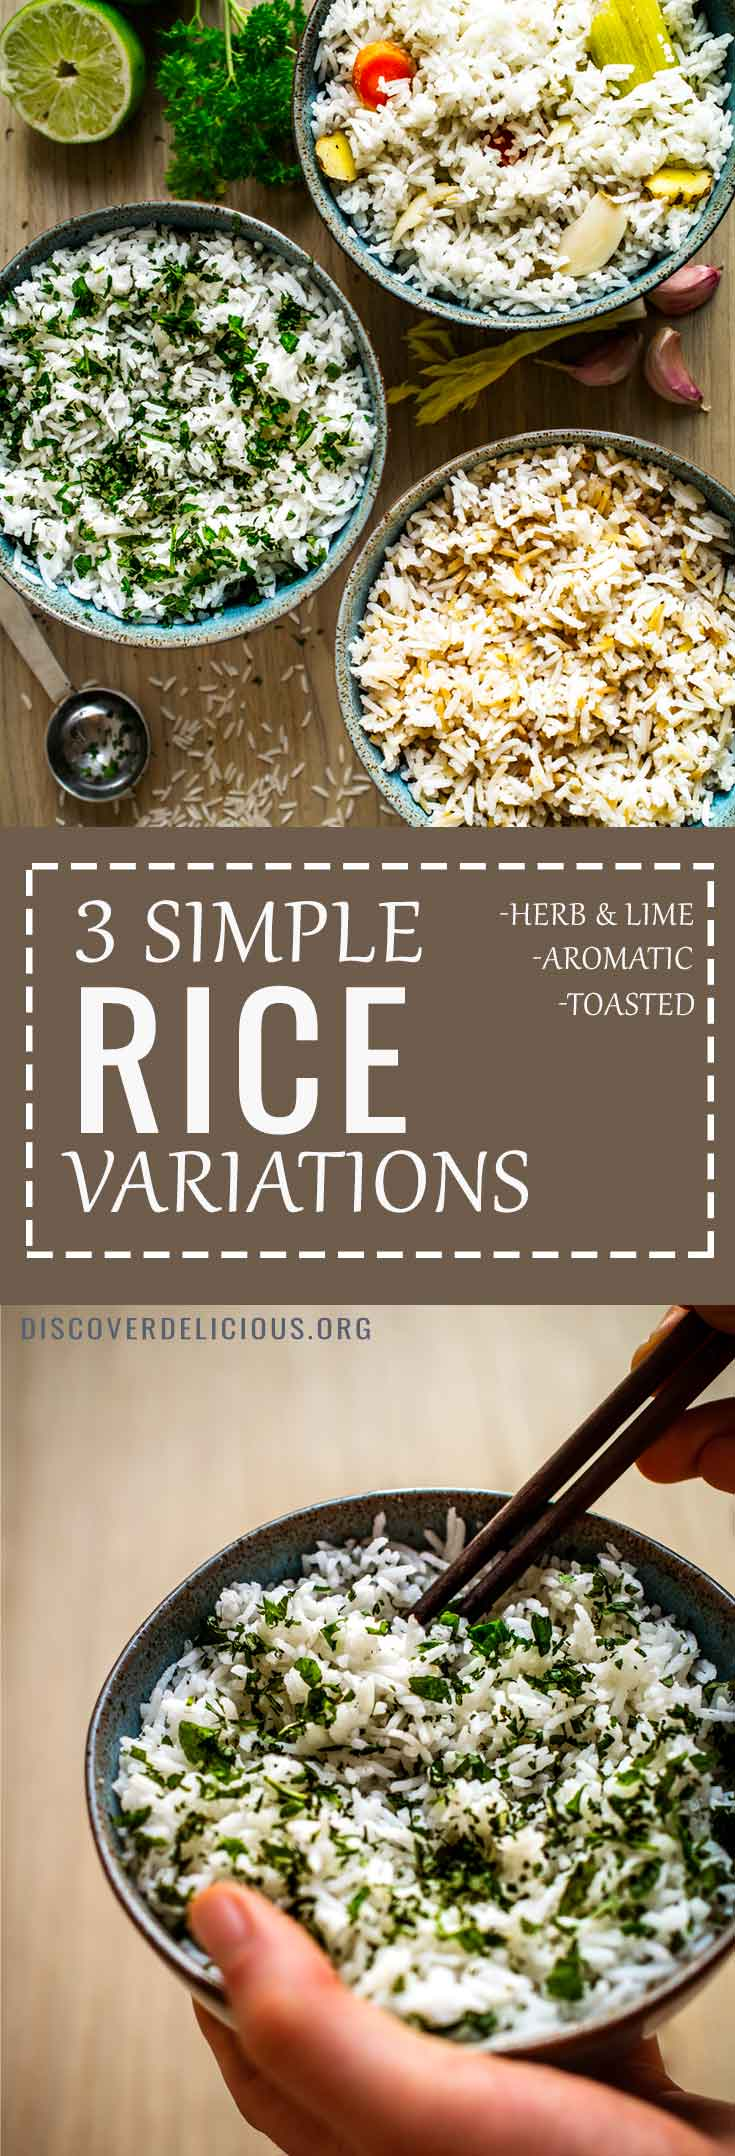 3 simple ways to liven up rice: Toasted rice + sesame oil & soy sauce, also Herbs & Lime juice, and lastly Aromatic Rice cooked in aromatics such as garlic and ginger! All 3 recipes in one post. Plus method for perfect, fluffy rice!  #rice #recipes #easy #herbs #lime #basmati  #simple #ways #how #to #cook #make #cilantro #lime #bowl #flavoured #vegetarian #vegan #savoury #vegetable #white #recipe